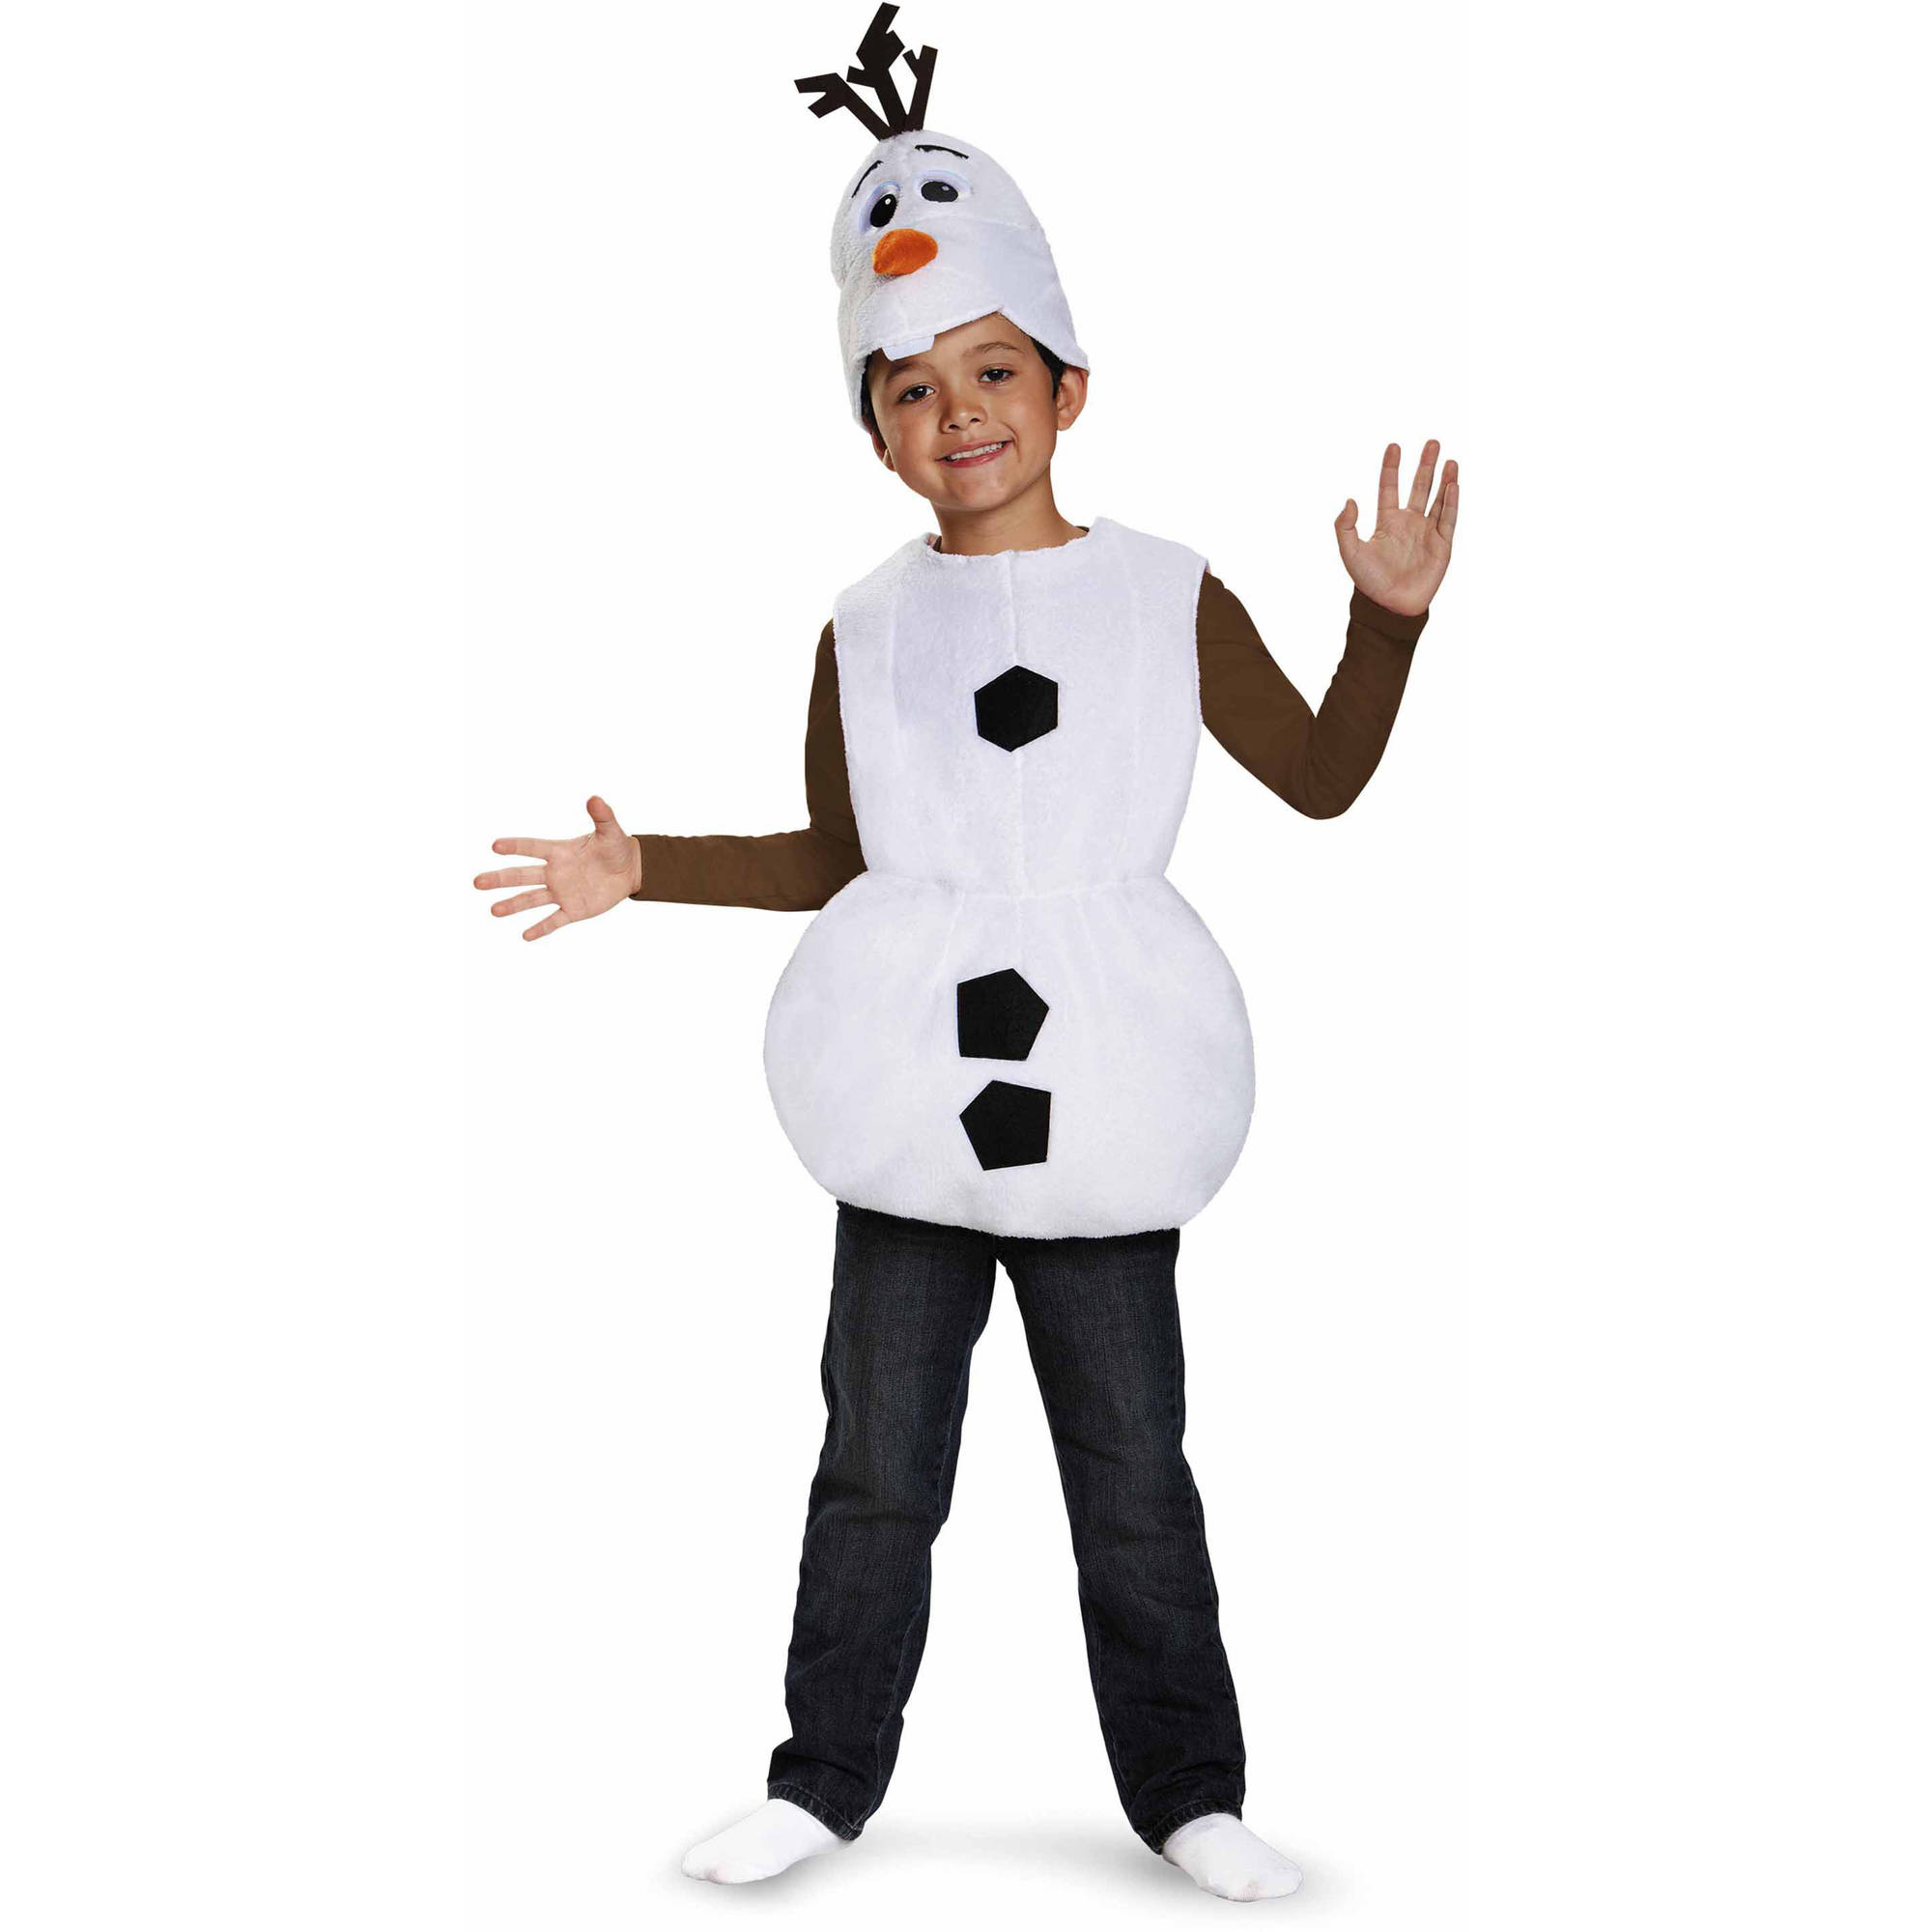 Frozen Olaf Basic Child Halloween Dress Up / Role Play Costume - Walmart.com  sc 1 st  Walmart & Frozen Olaf Basic Child Halloween Dress Up / Role Play Costume ...